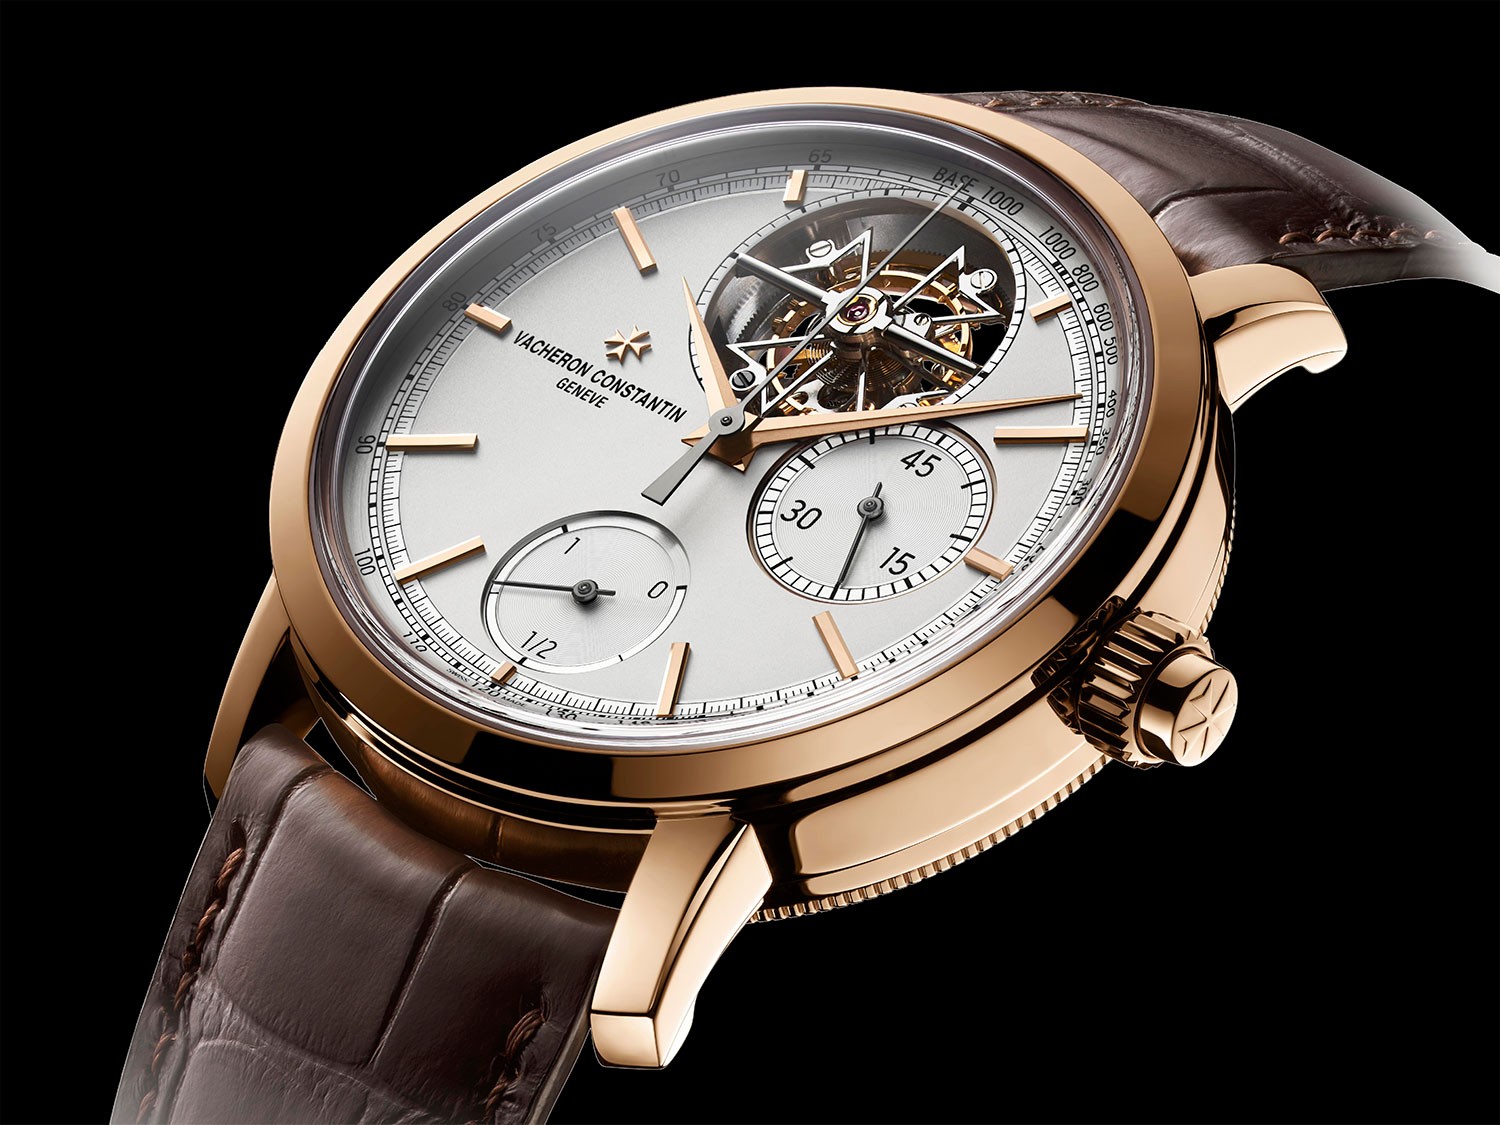 Perfil del Vacheron Constantin Traditionnelle Chronograph Tourbillon